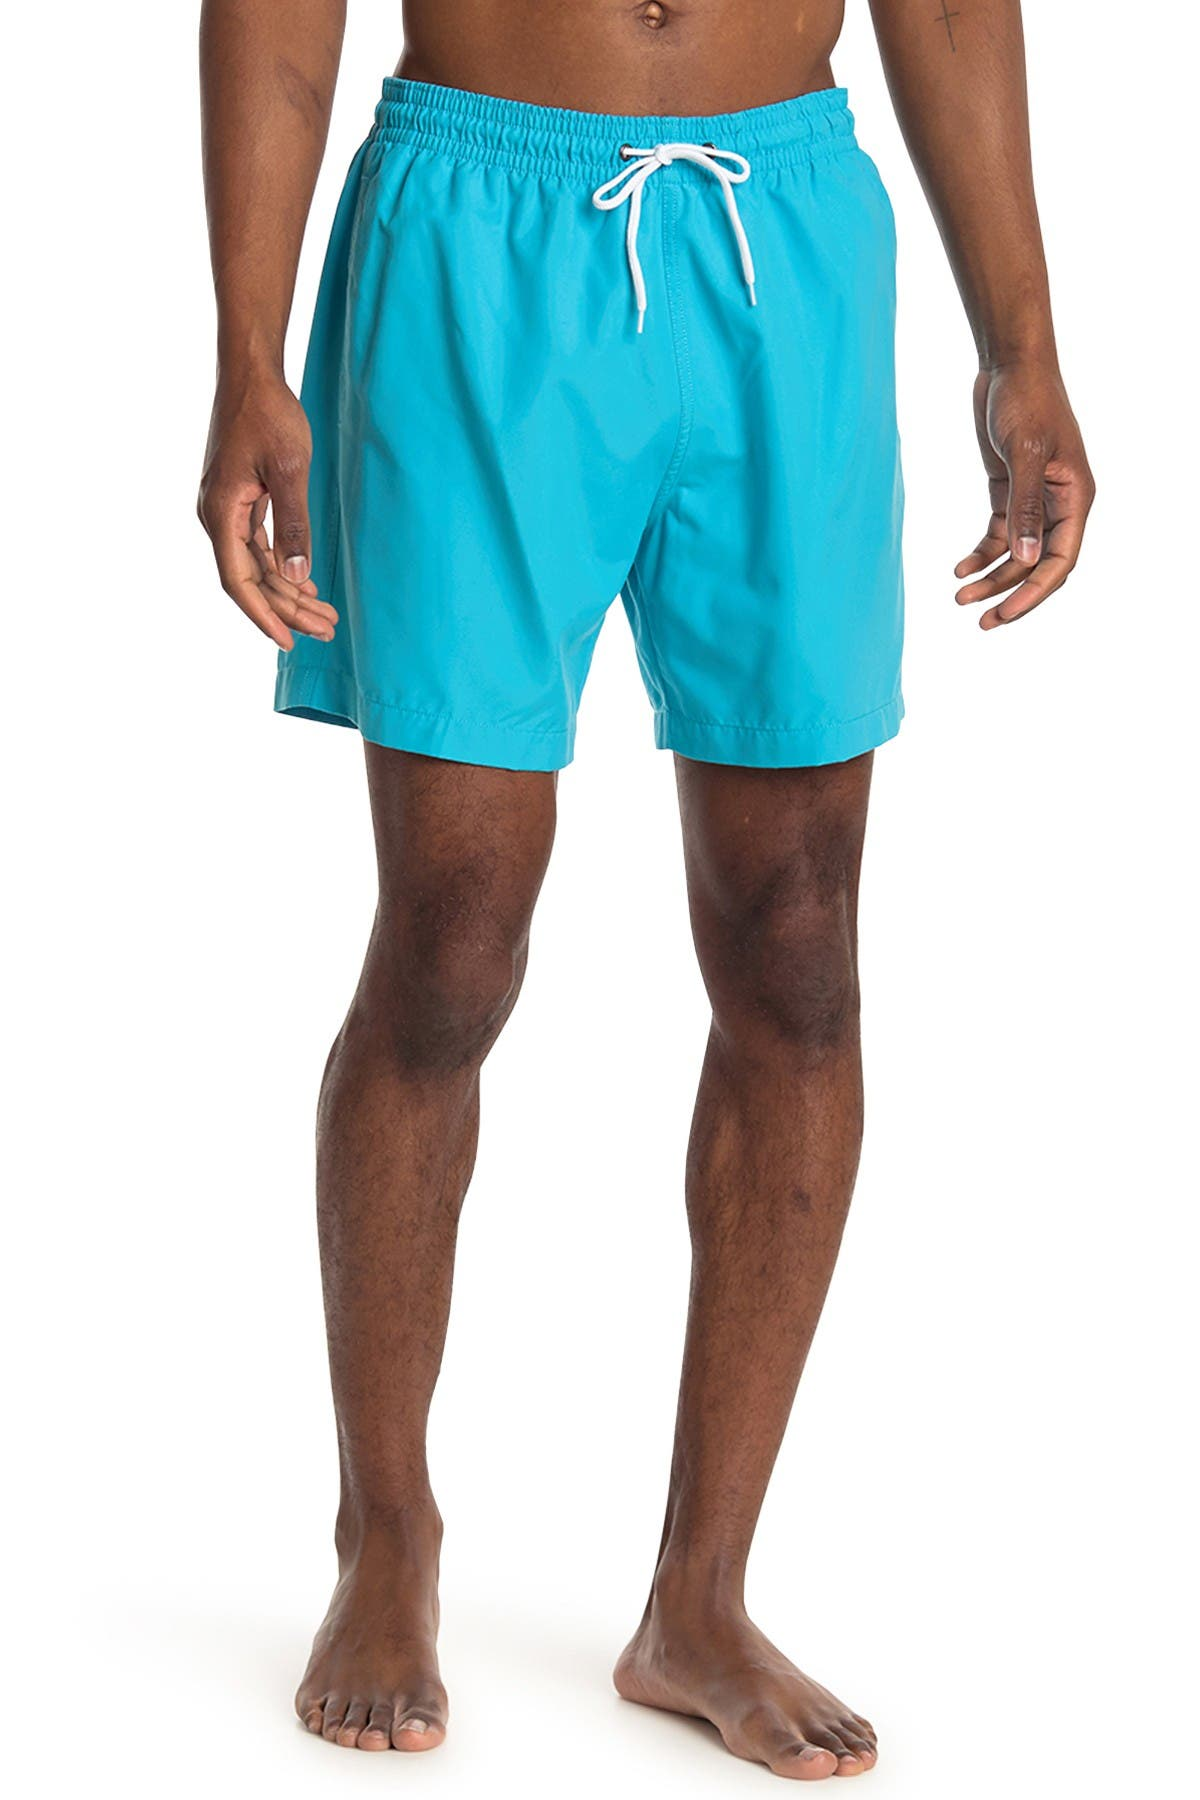 Image of Trunks Surf and Swim CO. Swami Tropical Print Board Shorts